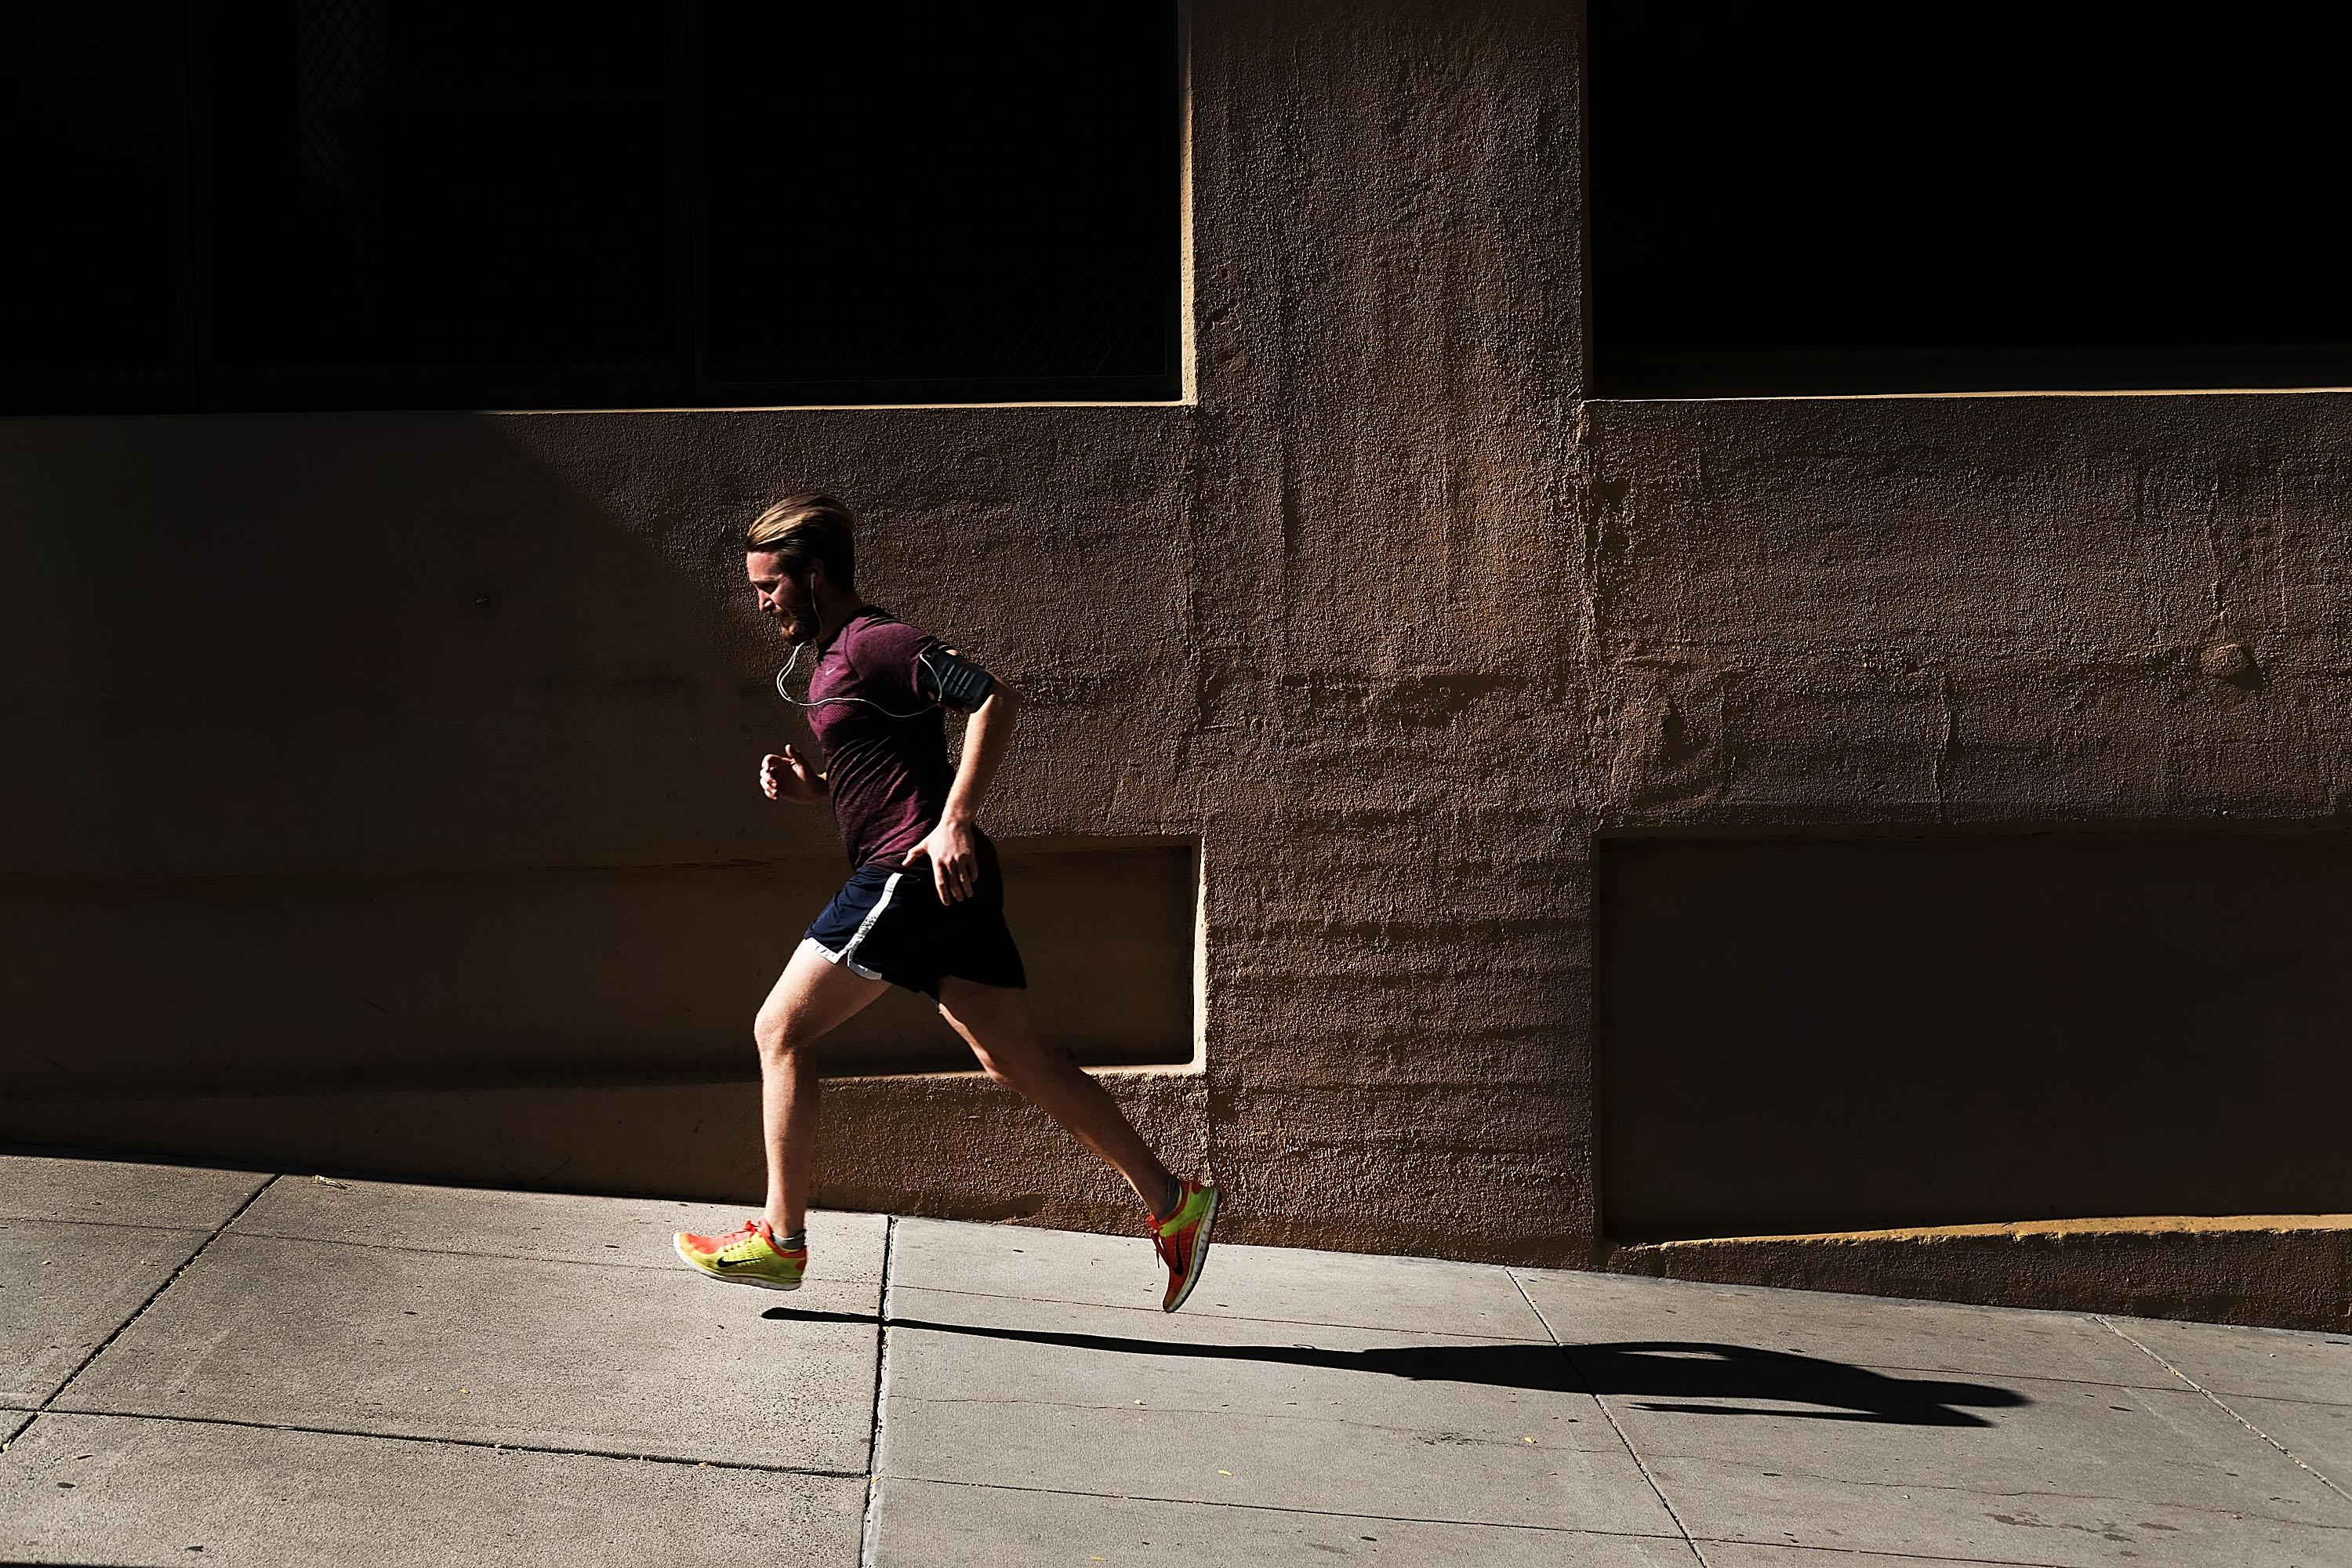 A man jogs on the street on October 18, 2016 in the Brooklyn borough of New York City.